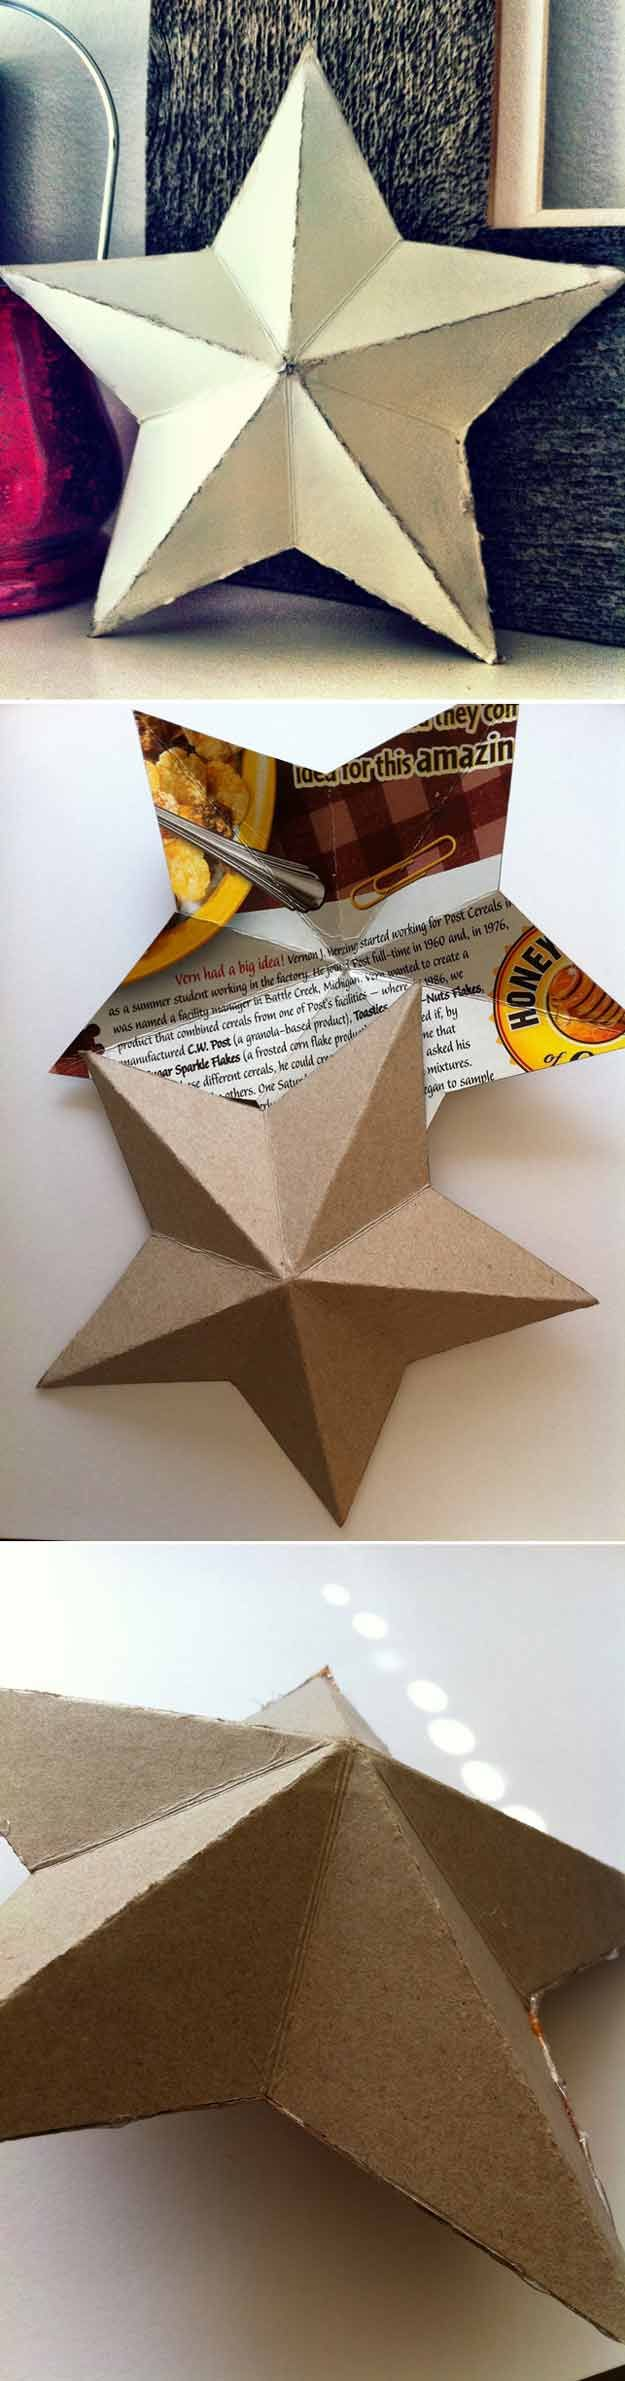 DIY Vintage Cereal Box Decorations   http://diyready.com/28-things-you-can-make-from-cereal-boxes/